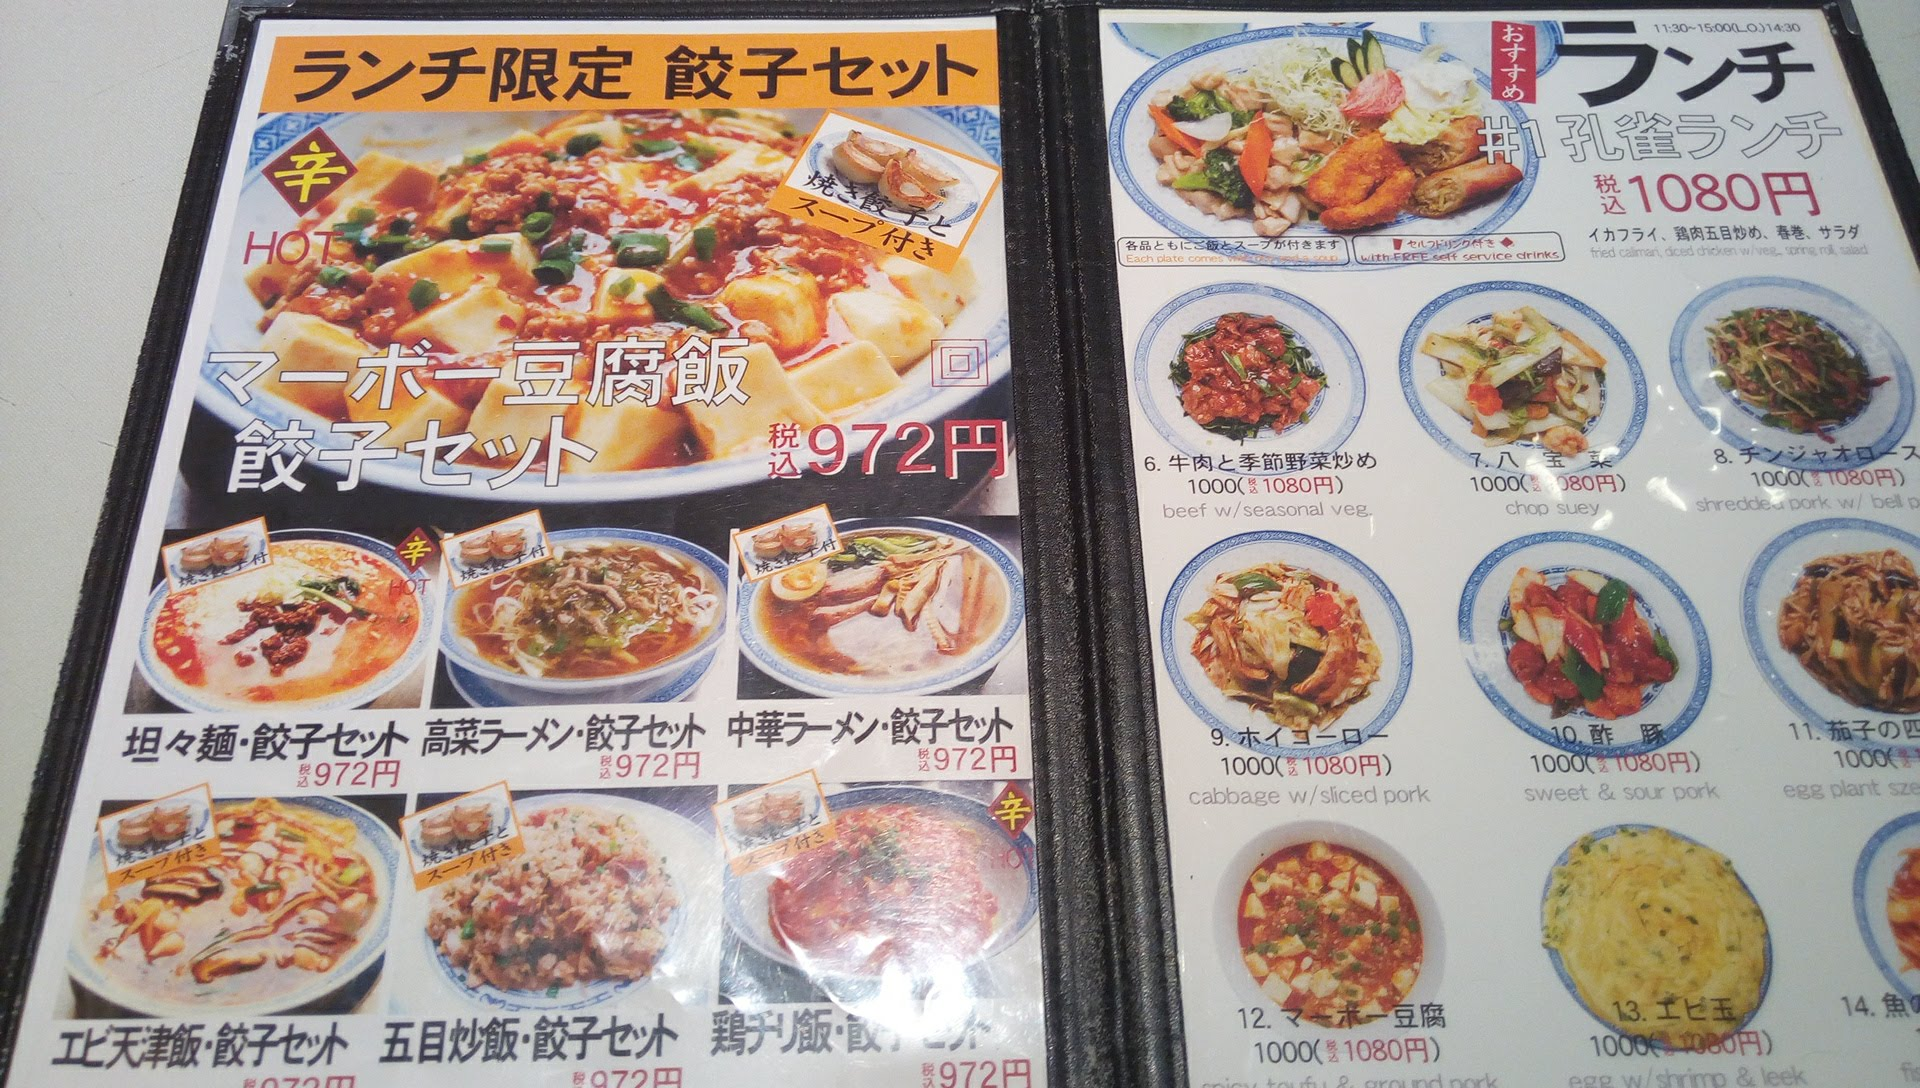 the lunch menu of Kuzyakurou